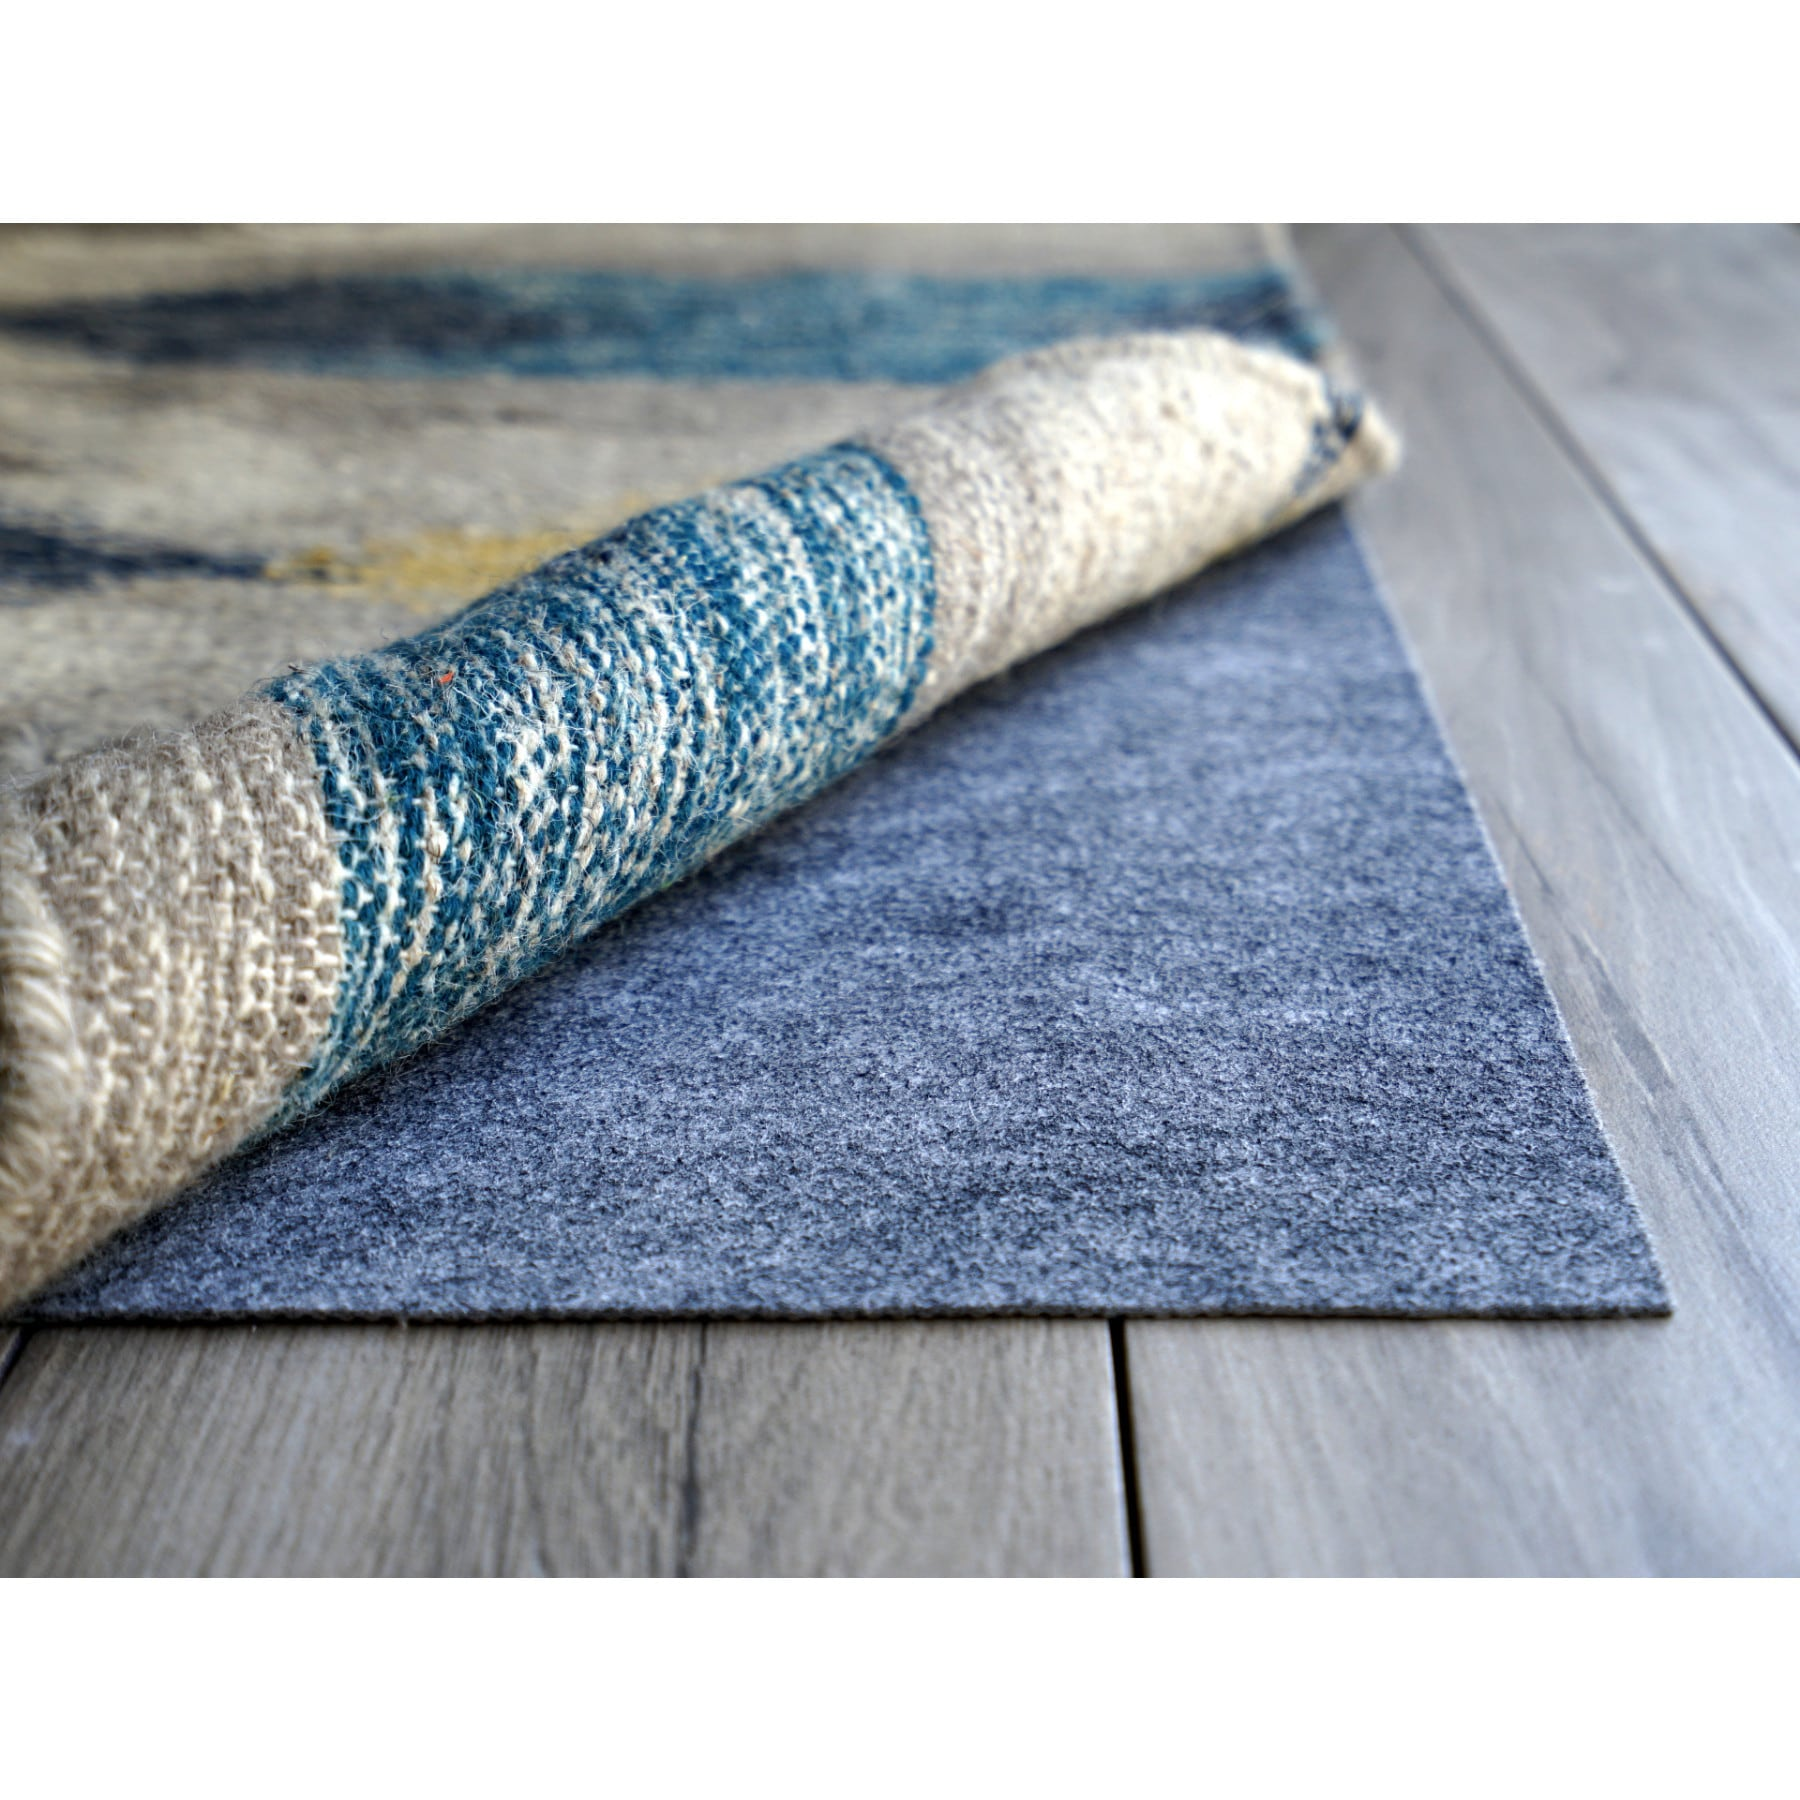 Rug Pad USA AnchorPro Low Profile Non-slip Felt & Rubber Rug Pad (3' x 10') by Overstock